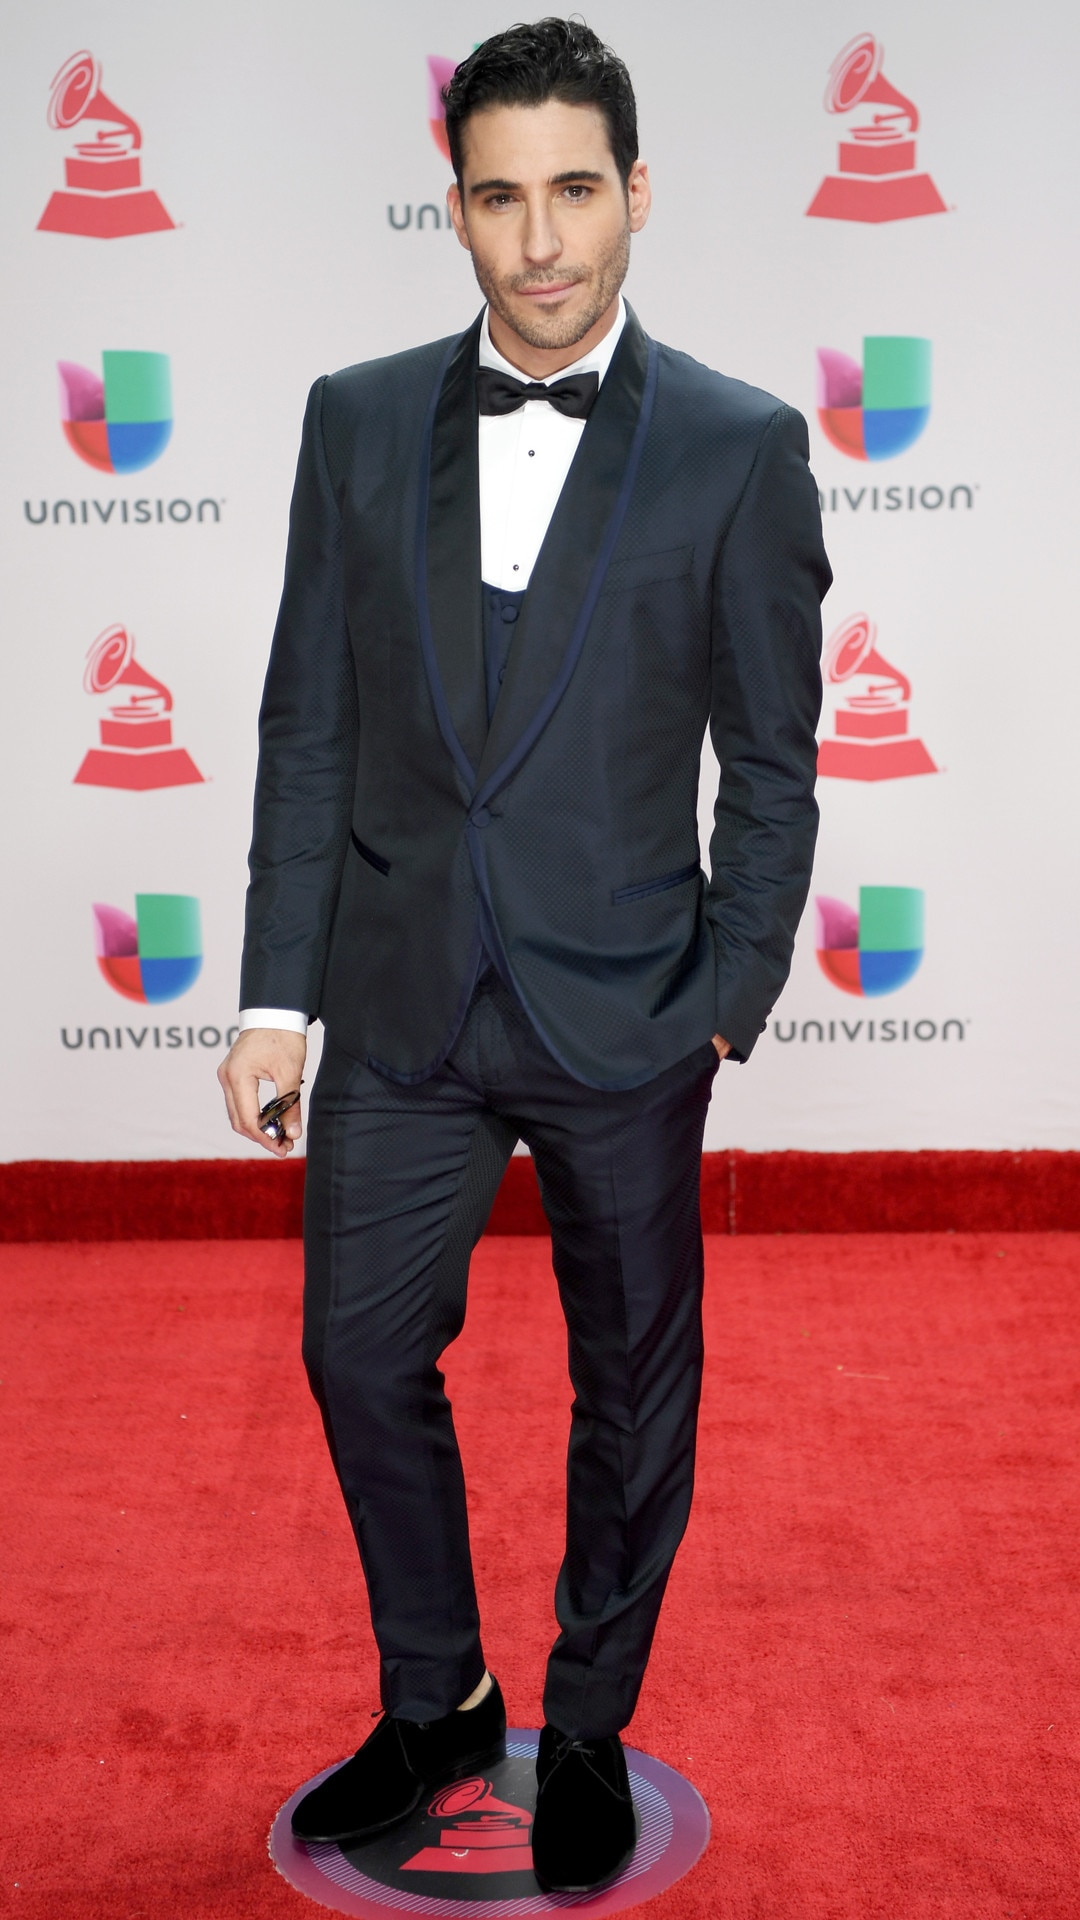 Miguel Angel Silvestre, 2017 Latin Grammy Awards